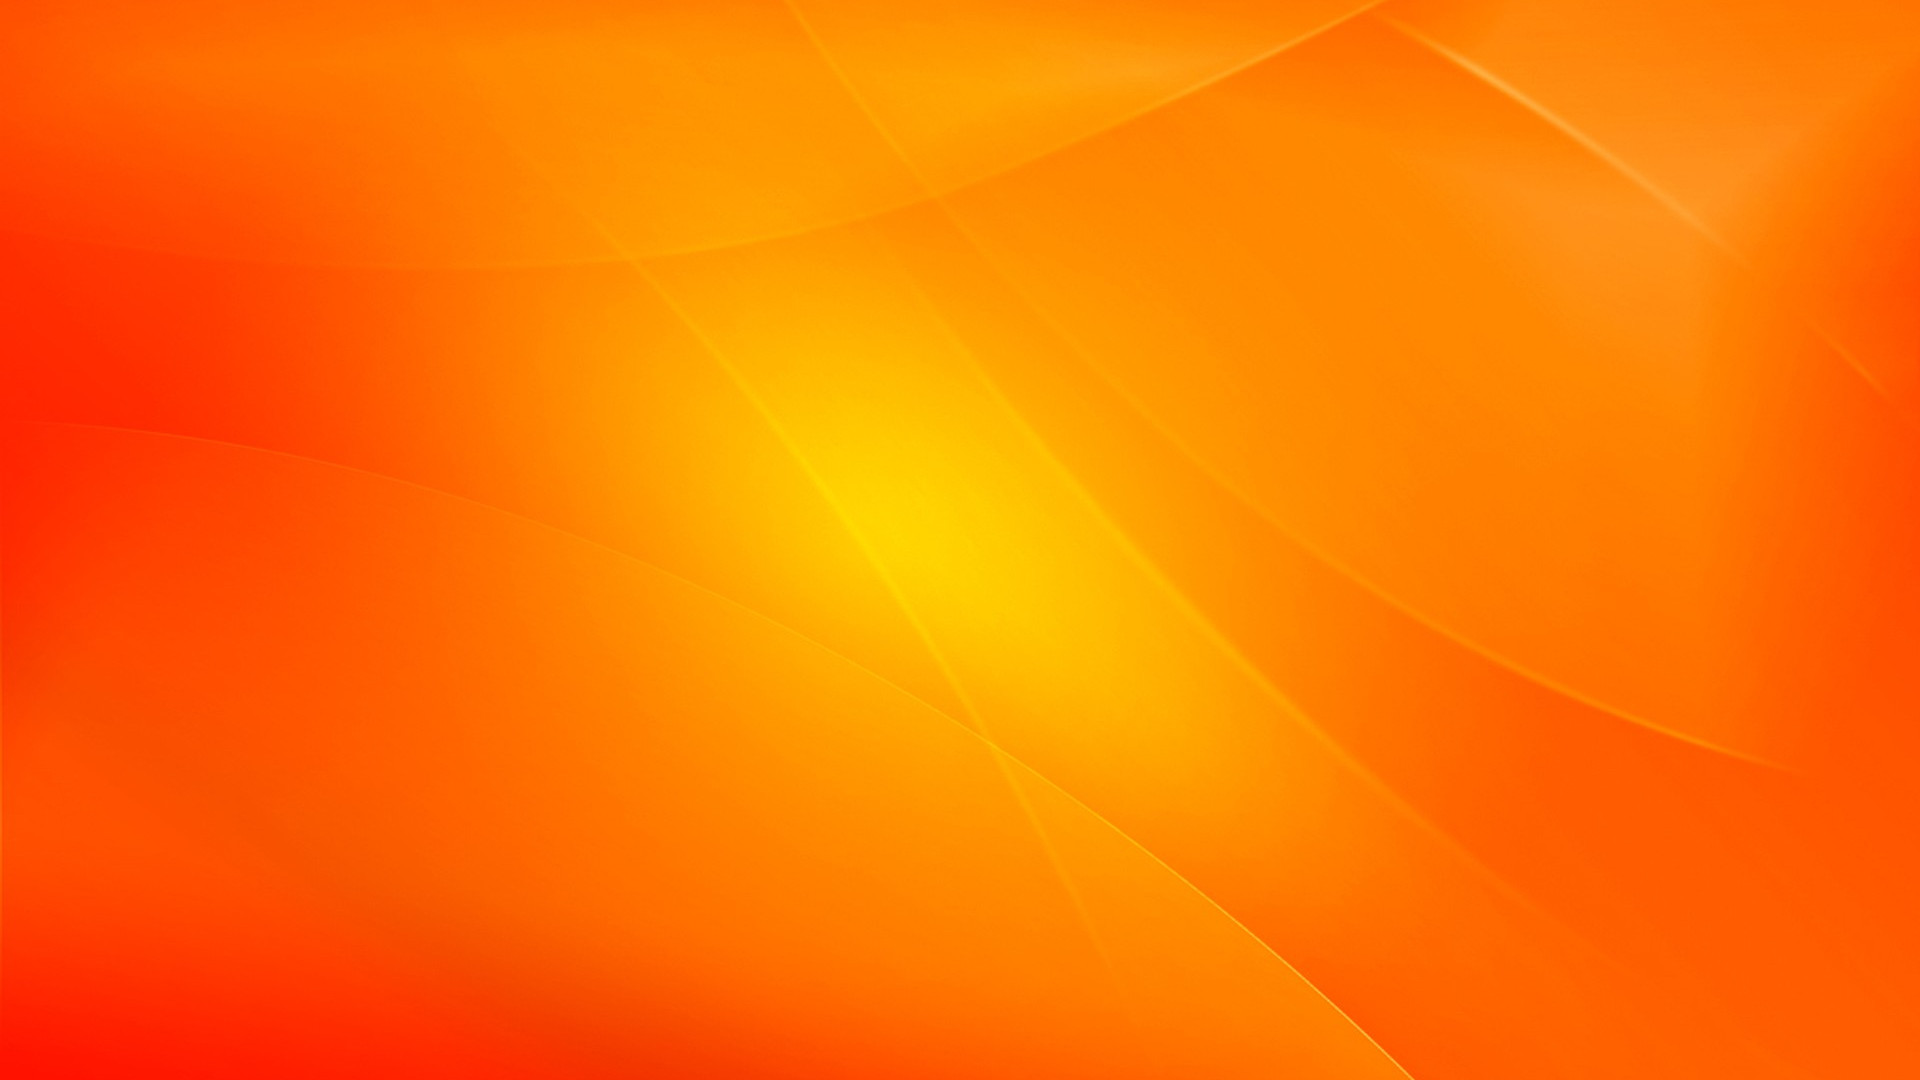 Orange Wallpapers HD Backgrounds Images Pics Photos 1920x1080